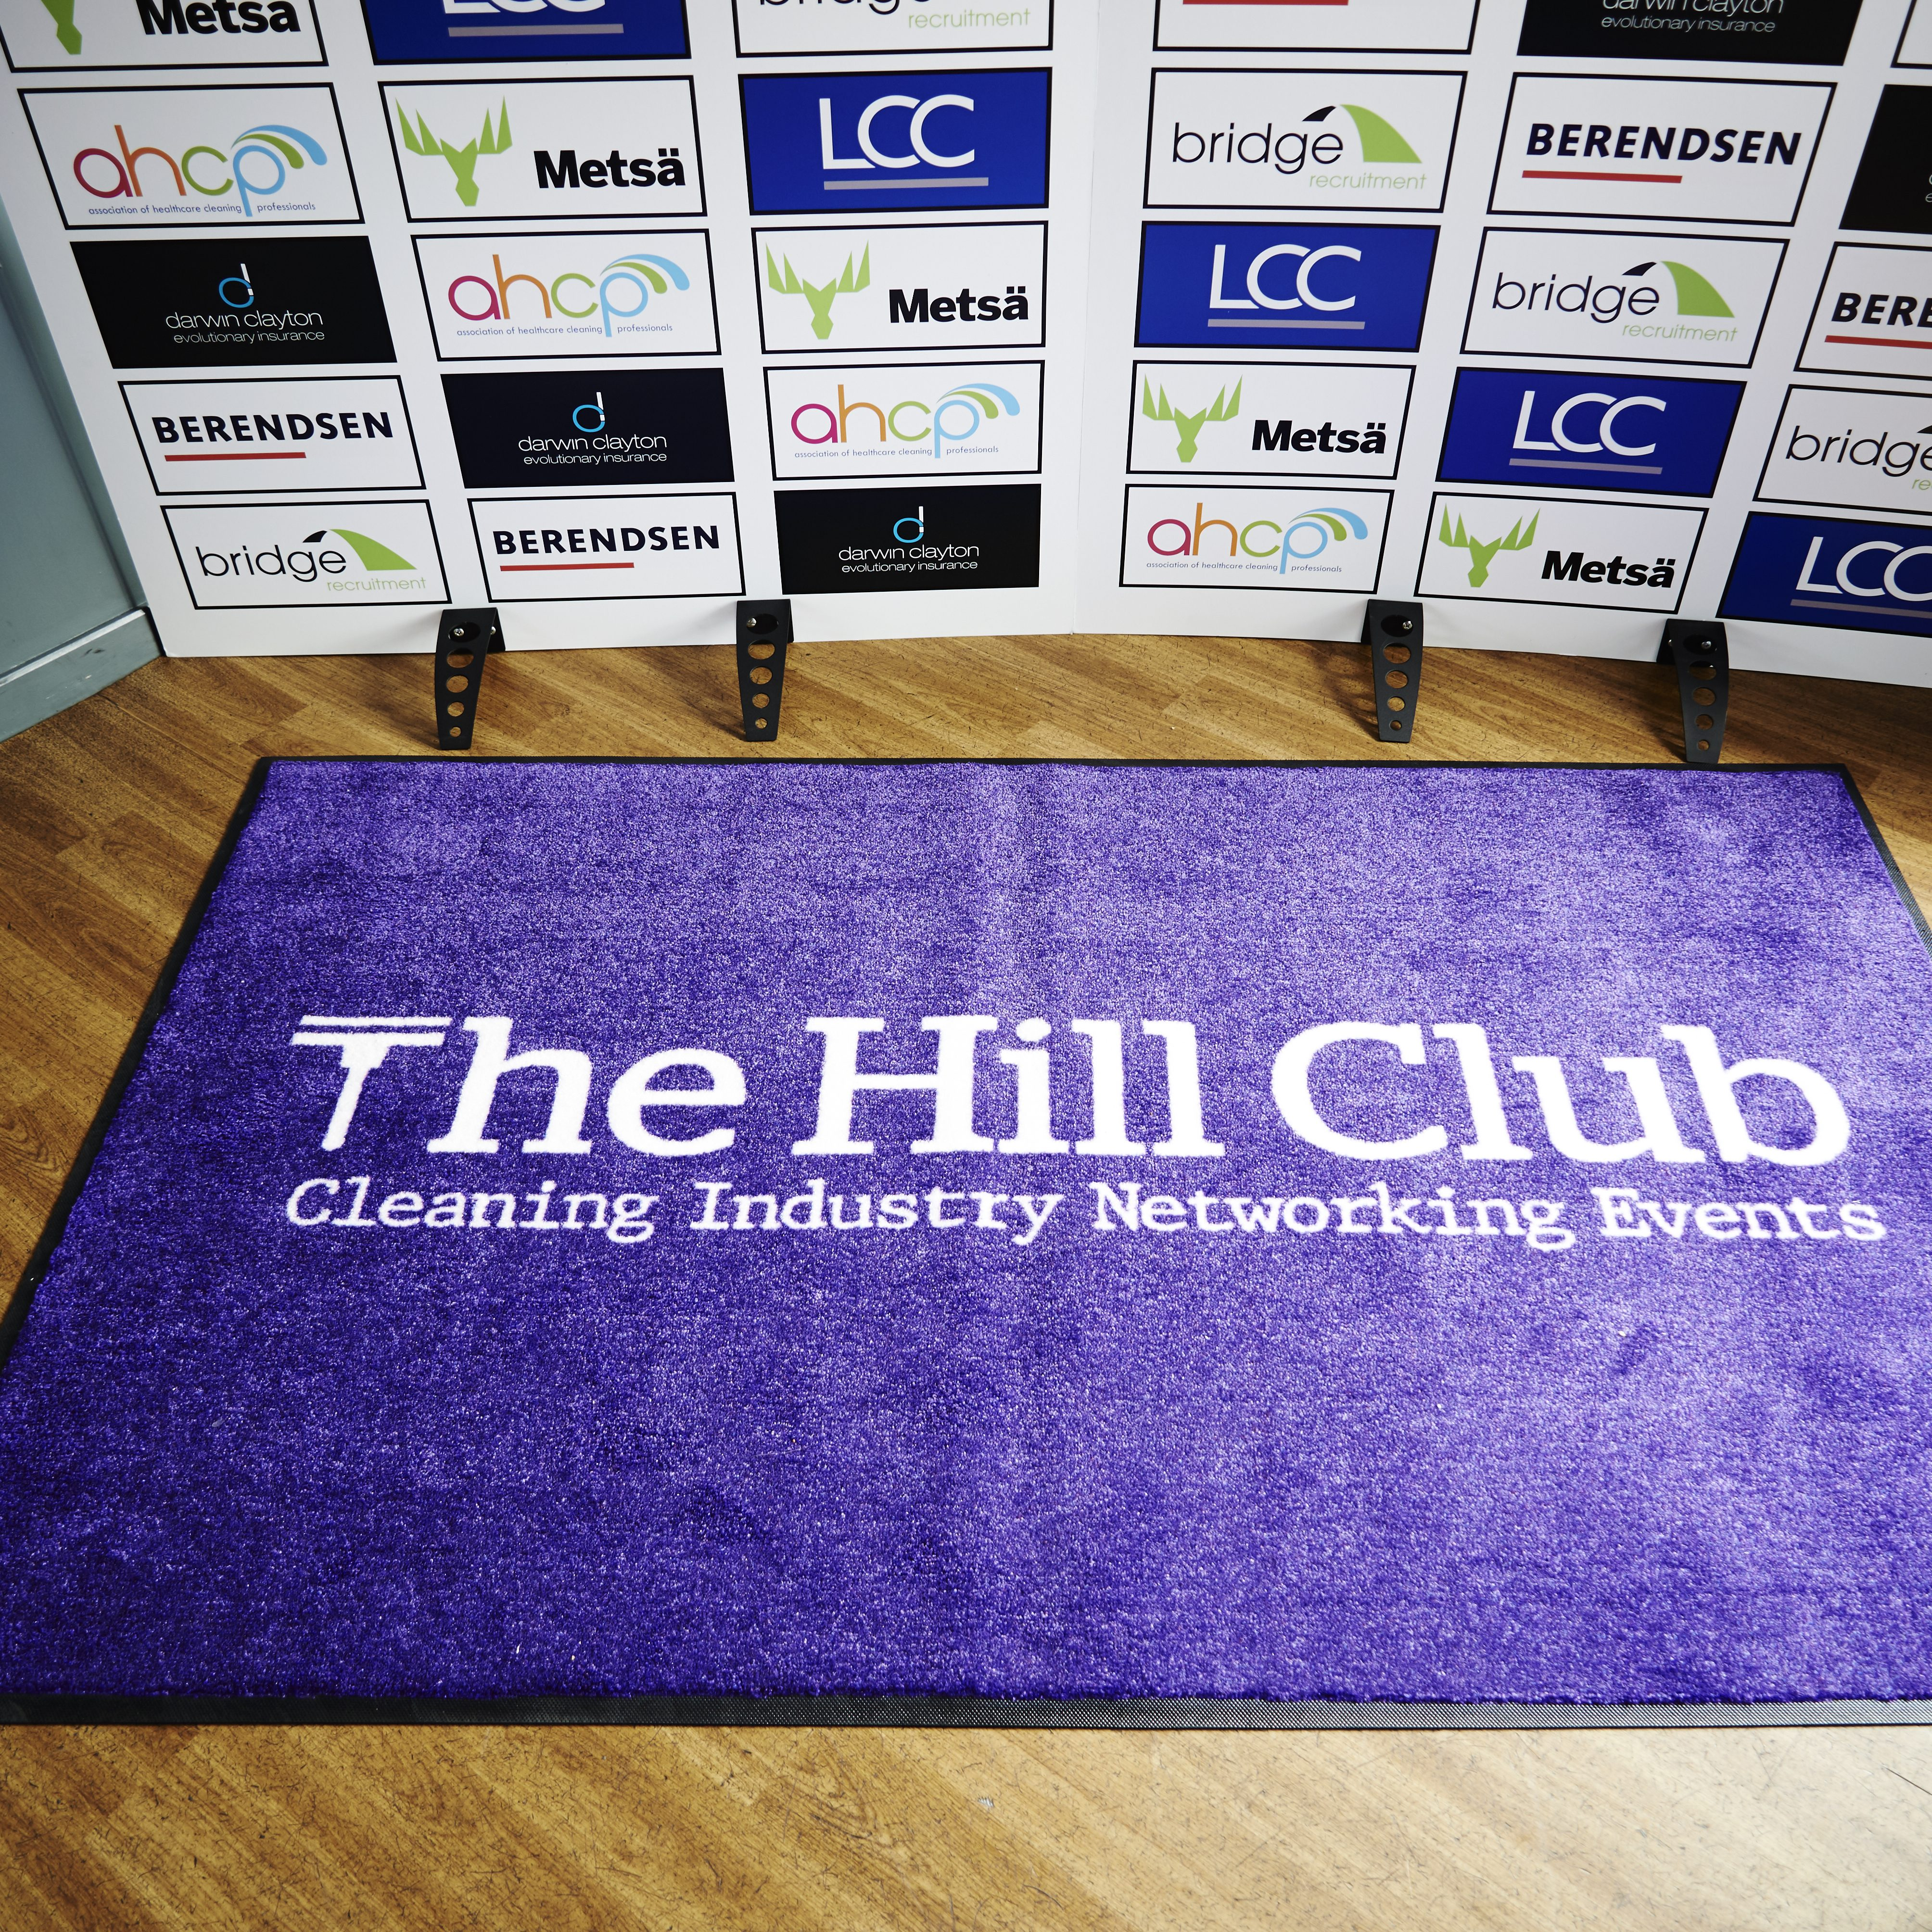 Hill Club Thames event